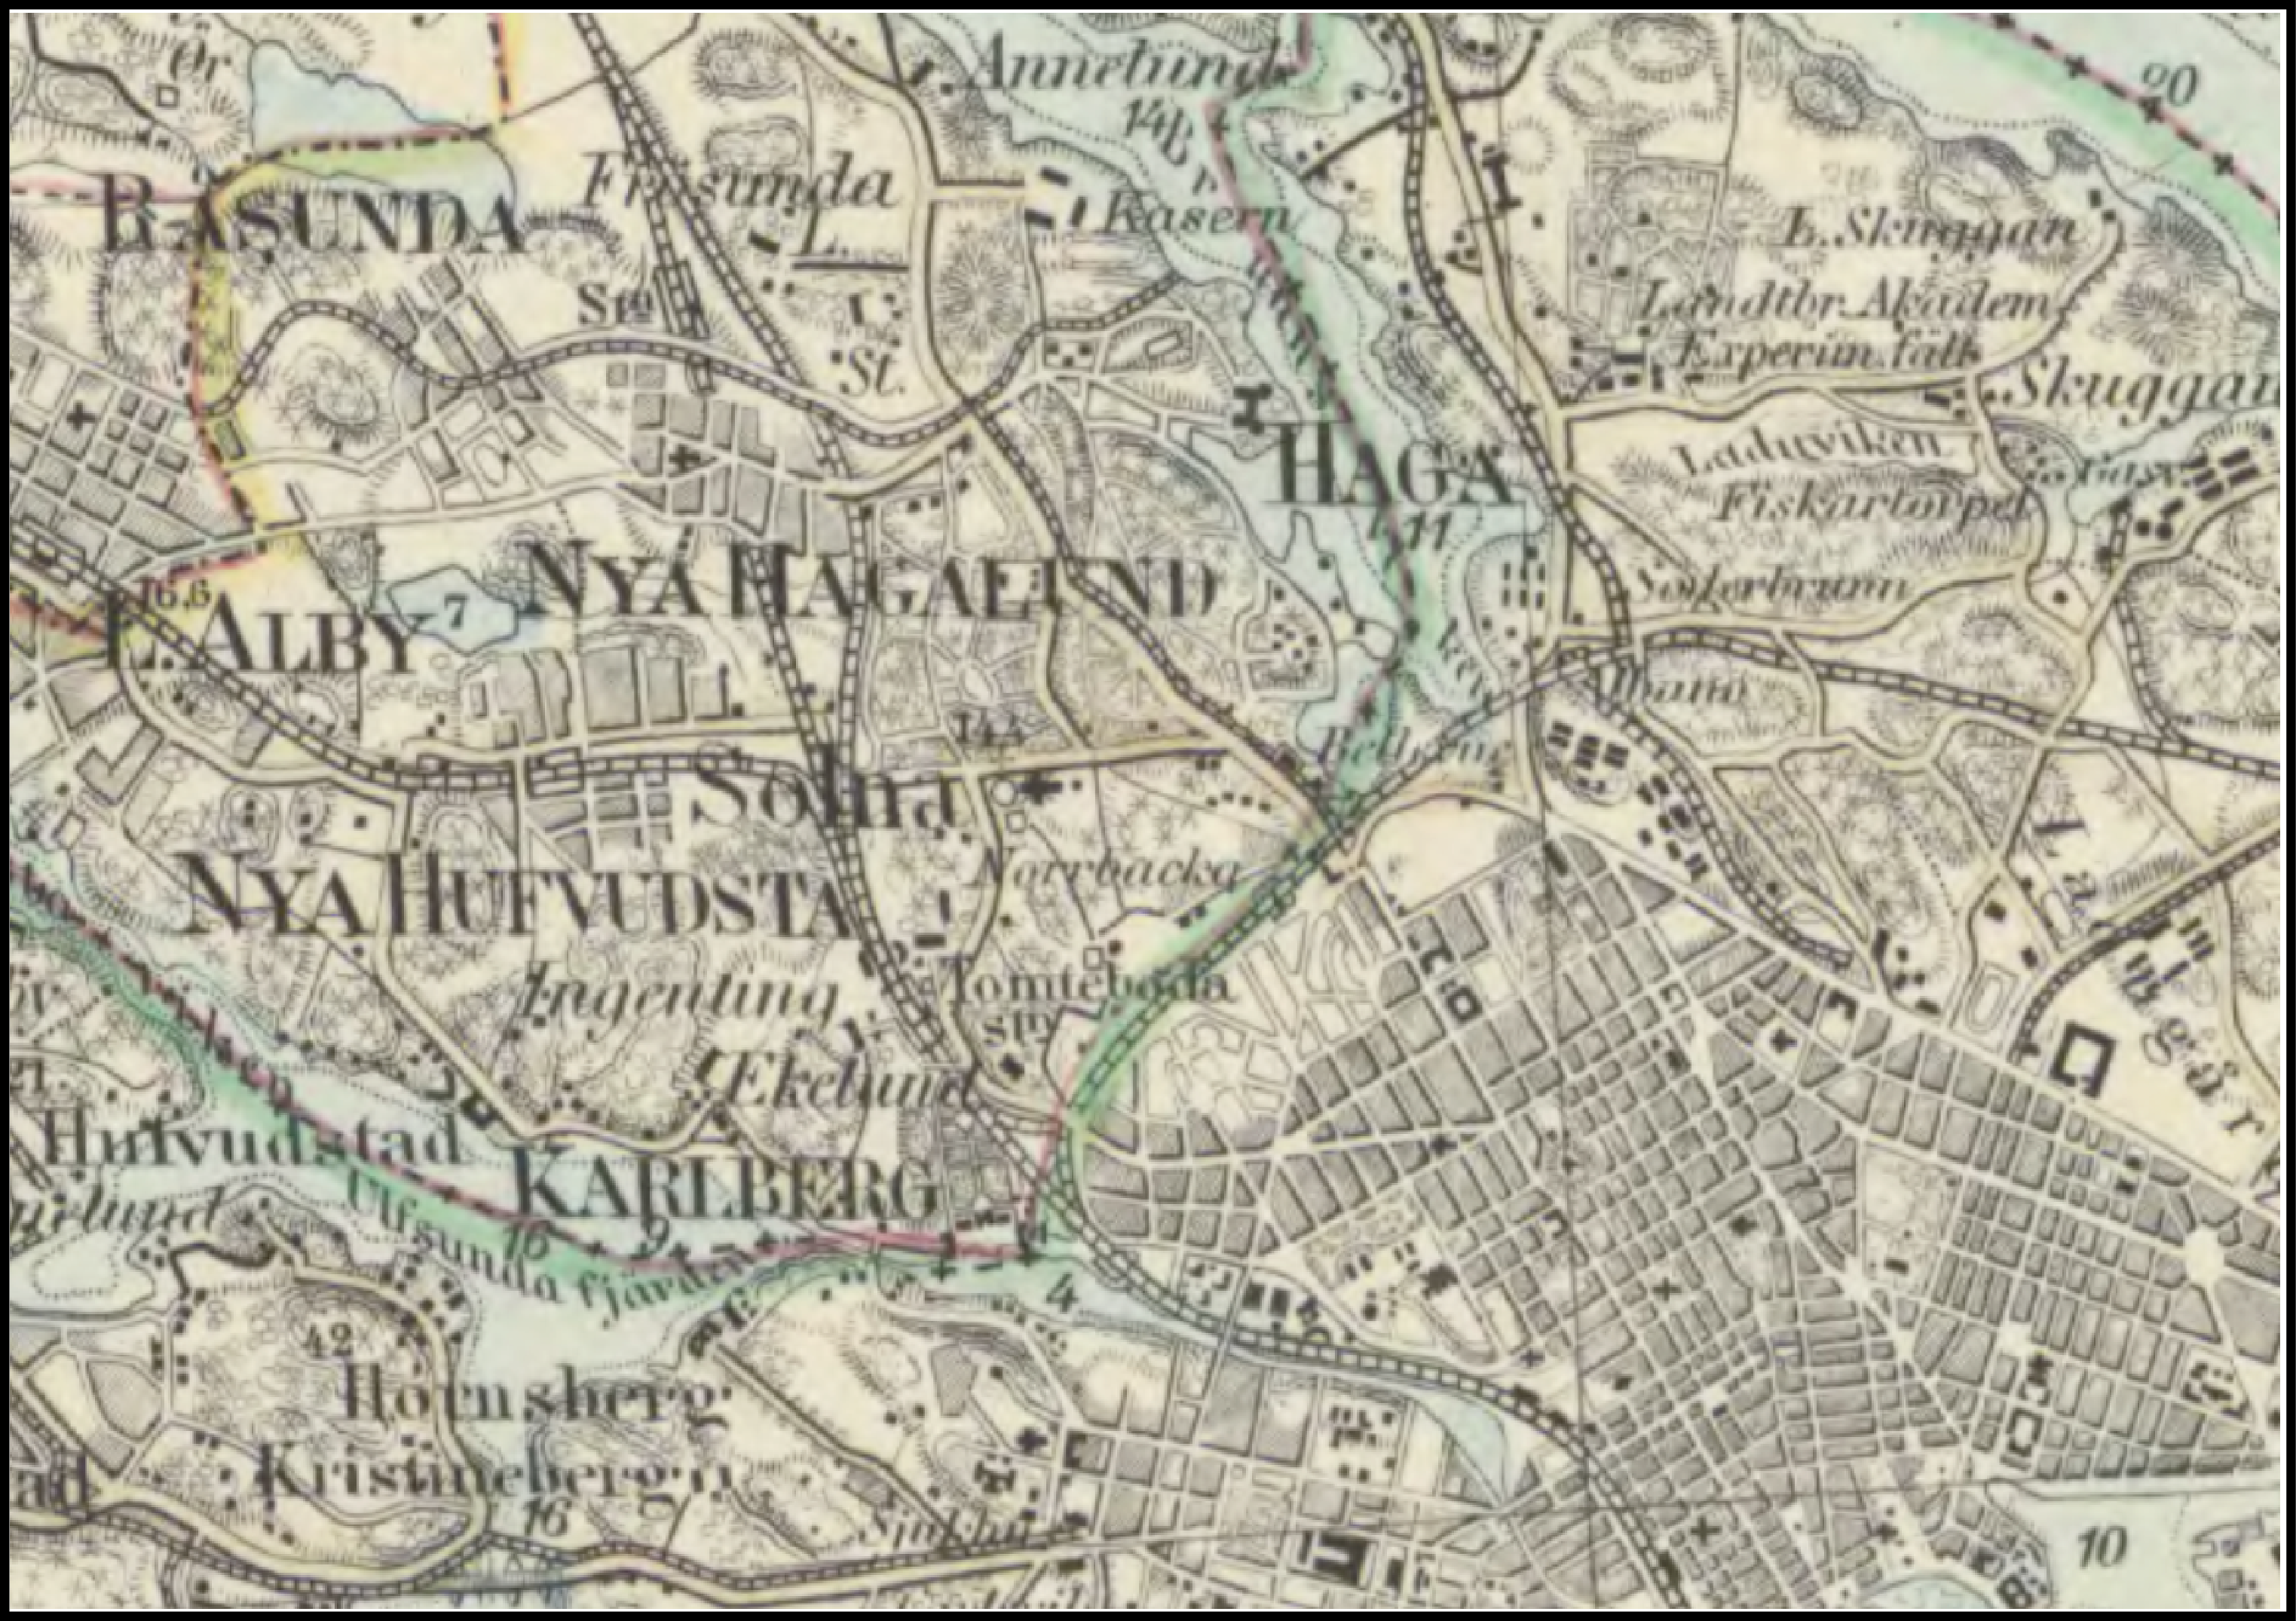 Figure 1. Part of the General Staff map over Solna and Vasastan in Stockholm and Solna municipalities. The map includes surface elevations, bathymetric point data, and highly generalised land cover classes. This example is from 1873.